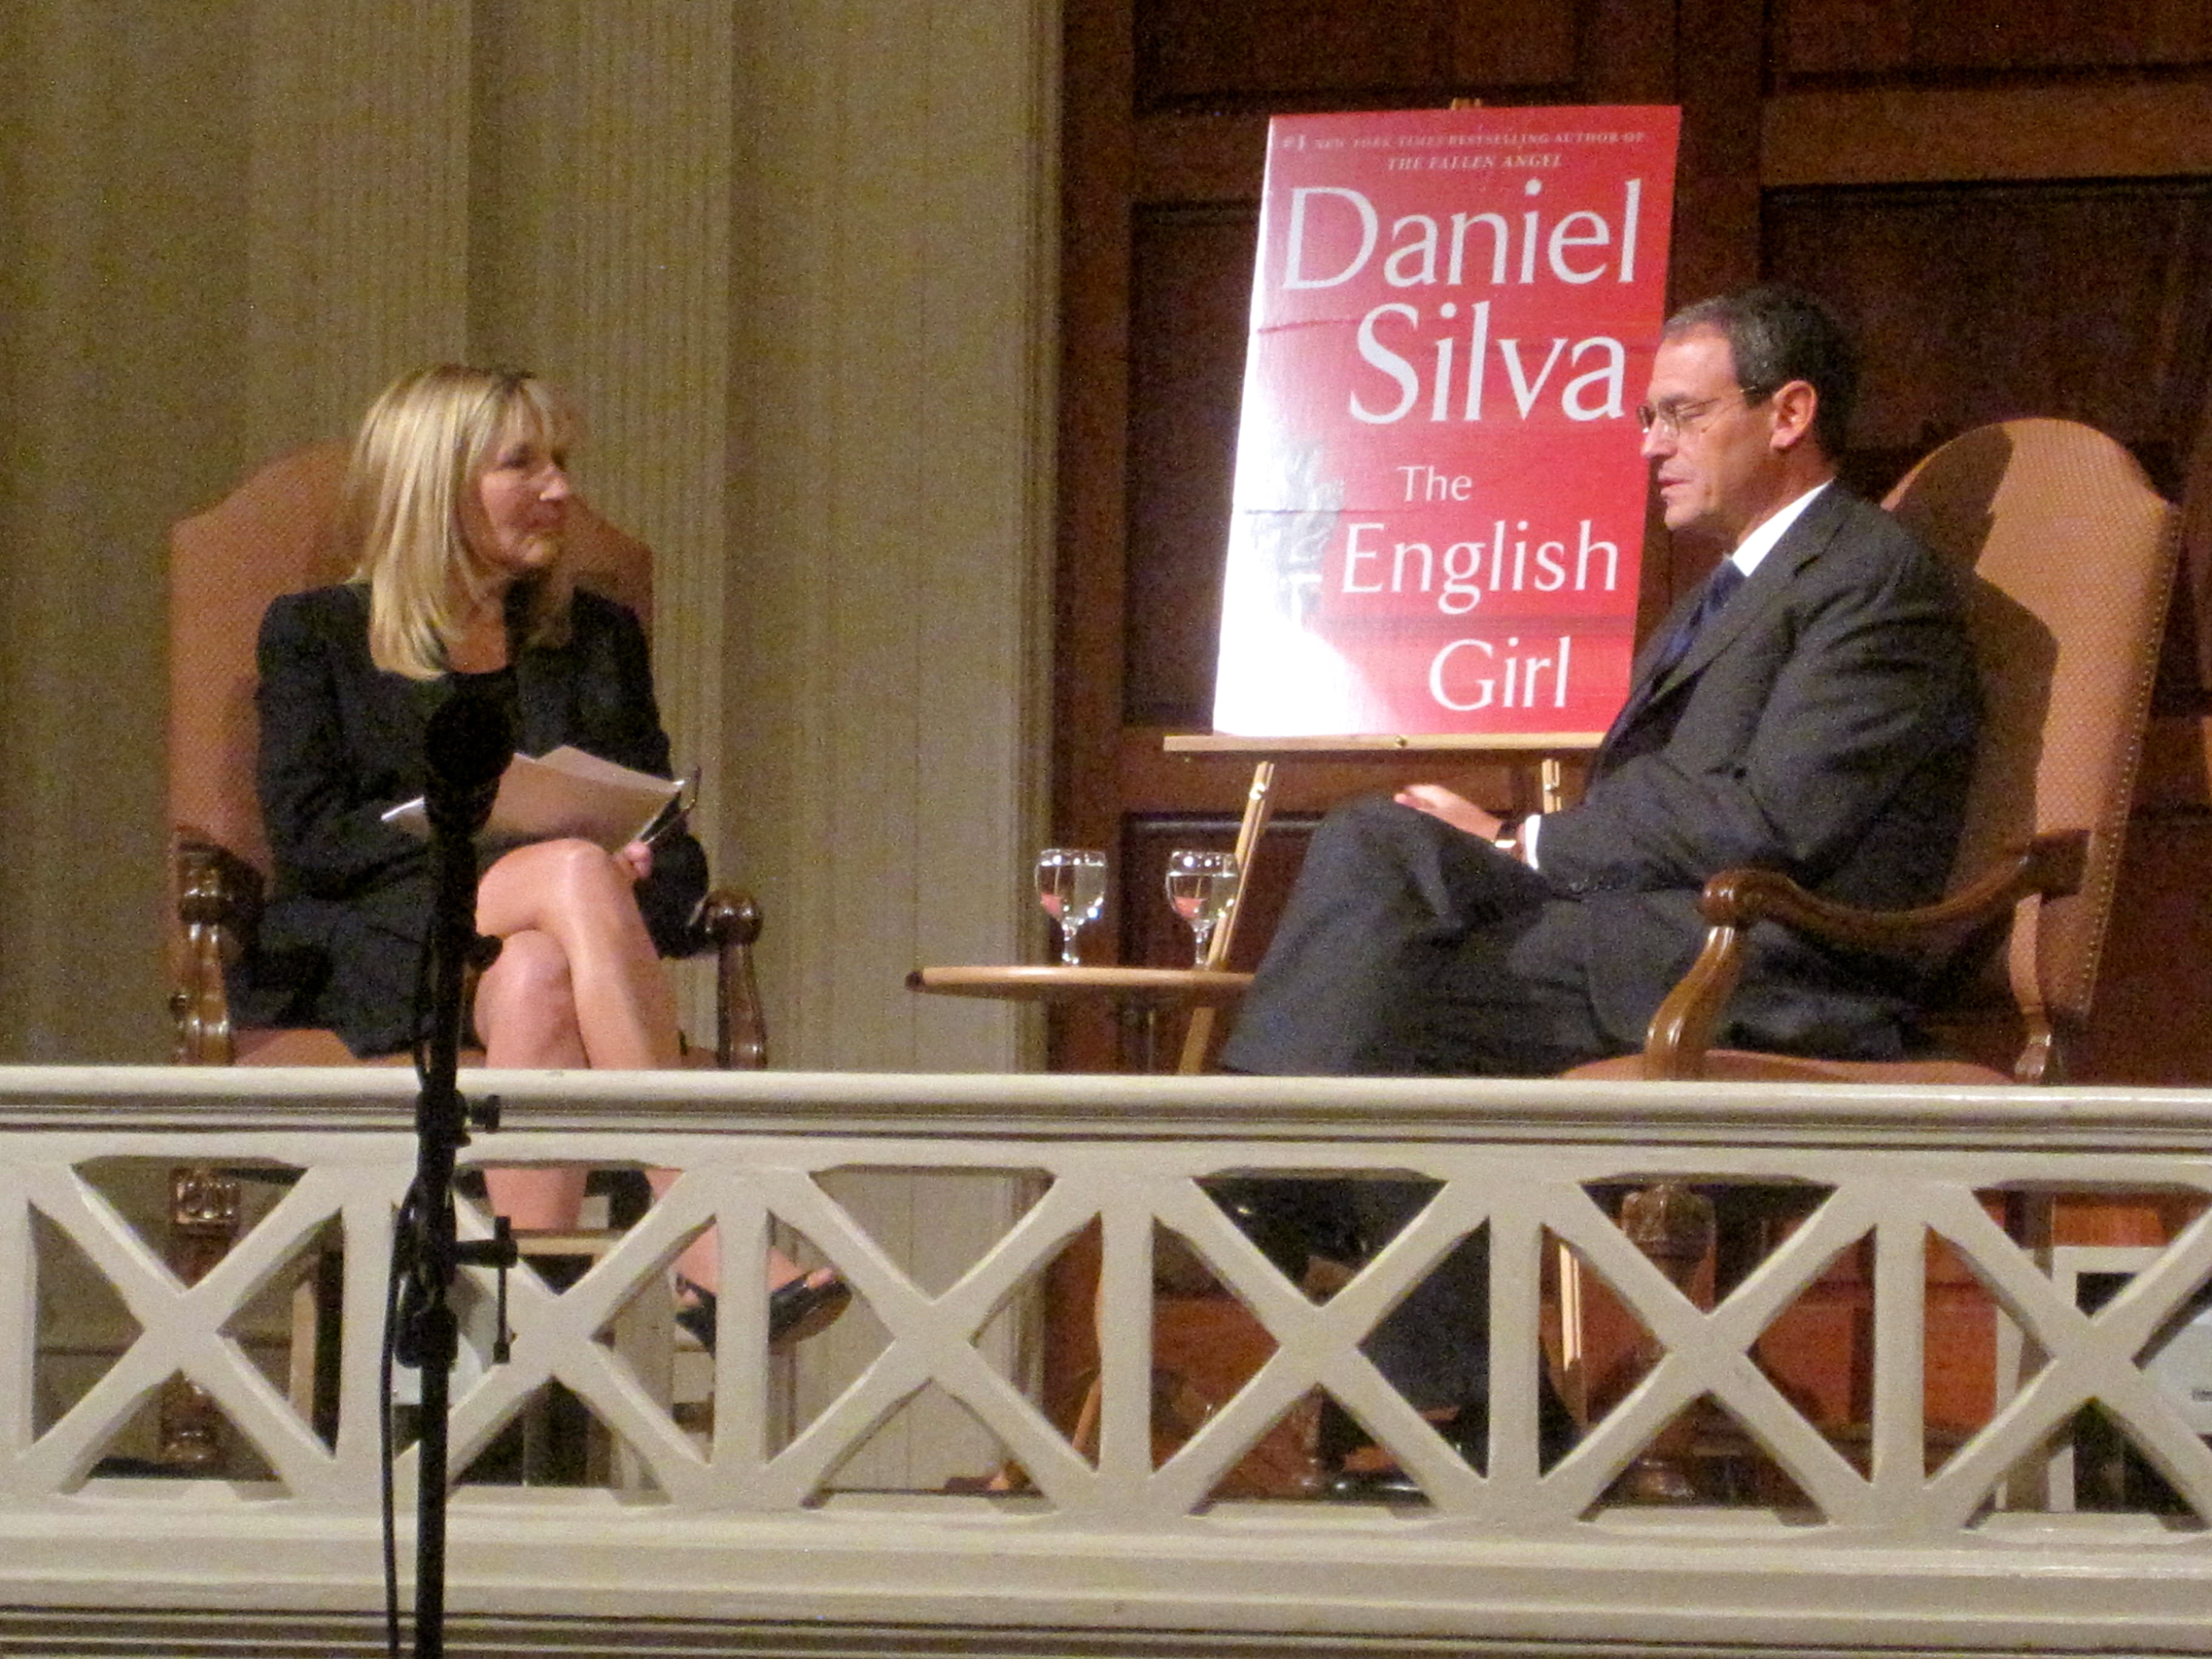 Bestselling 'The English Girl' Author Daniel Silva Divulges Habits and Habiliments